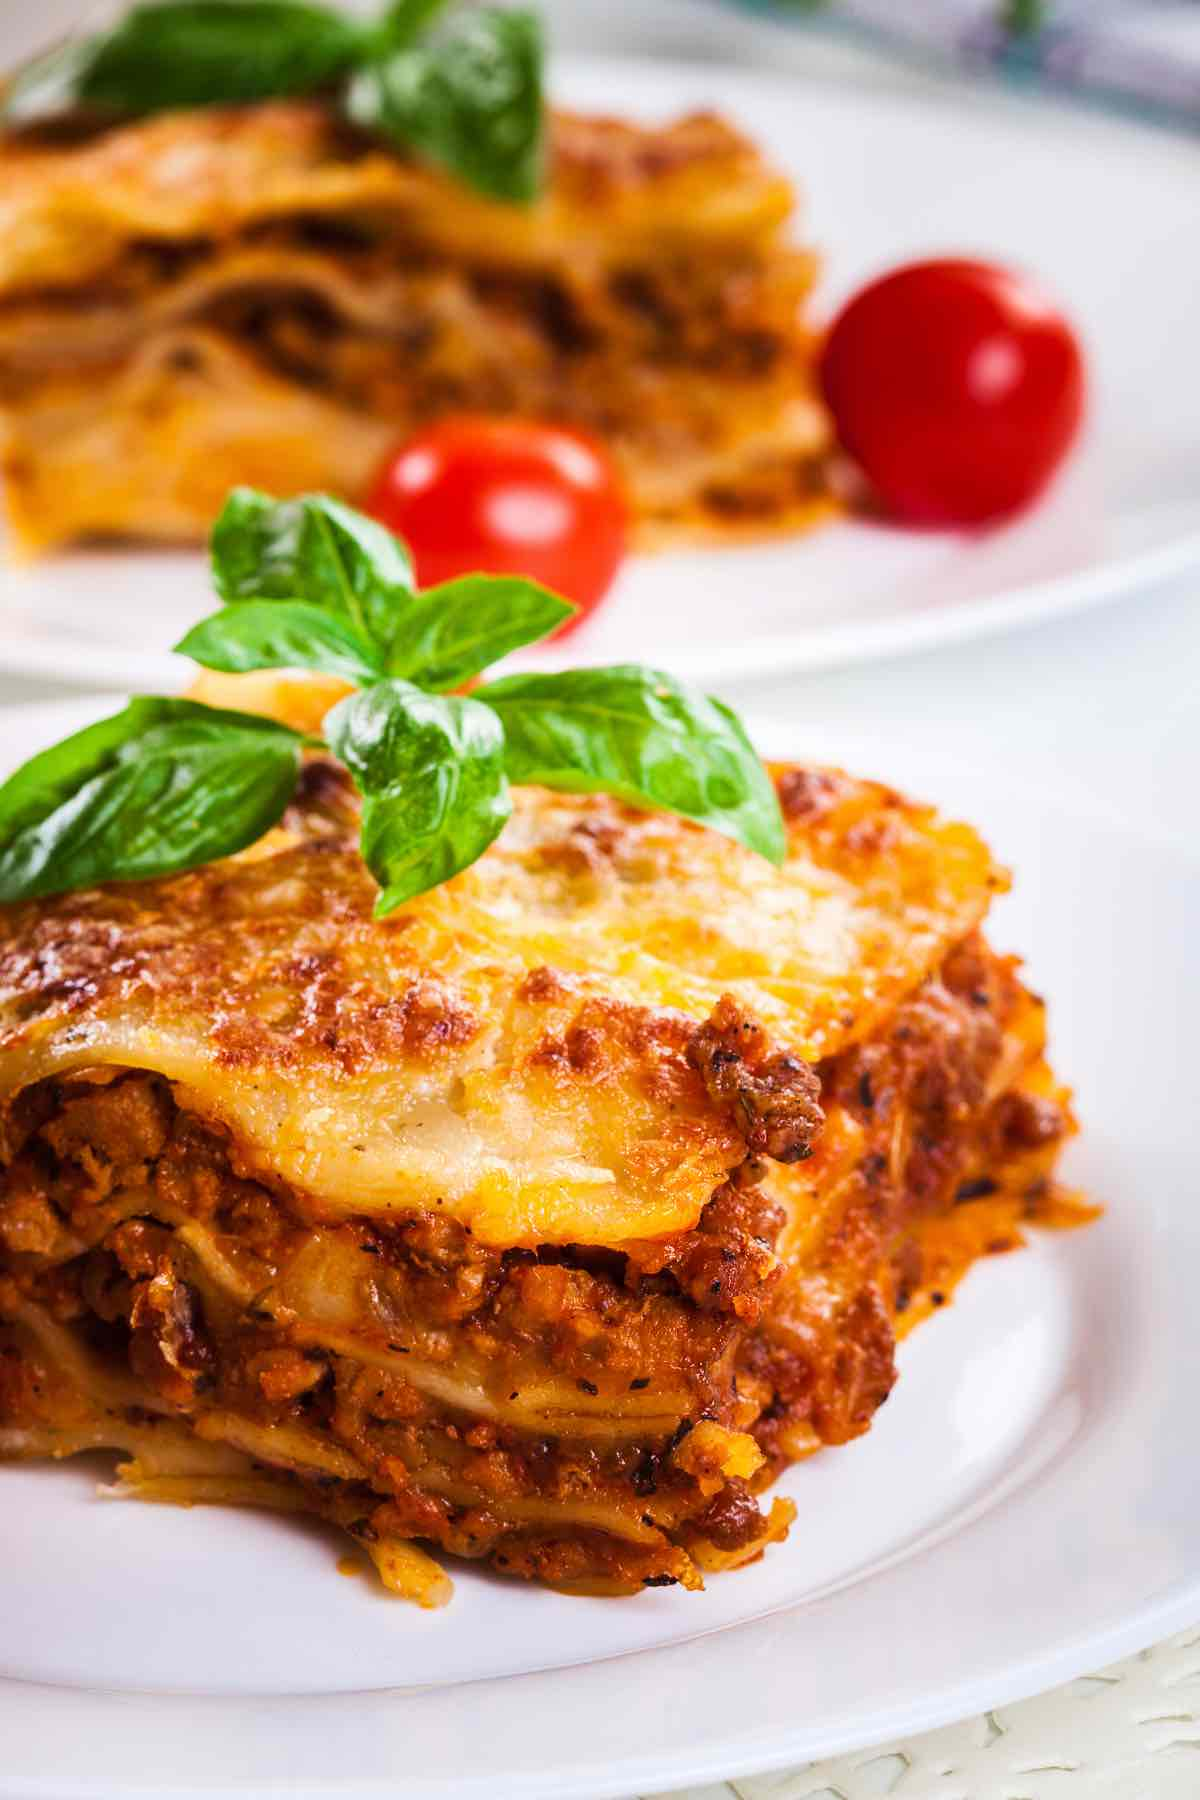 Knowing how to Reheat Lasagna in the Oven is a key skill so that the leftover lasagna tastes just as good as the day it first came out. If you simply microwave it until it's heated through, you may risk having mushy, unappetizing lasagna.